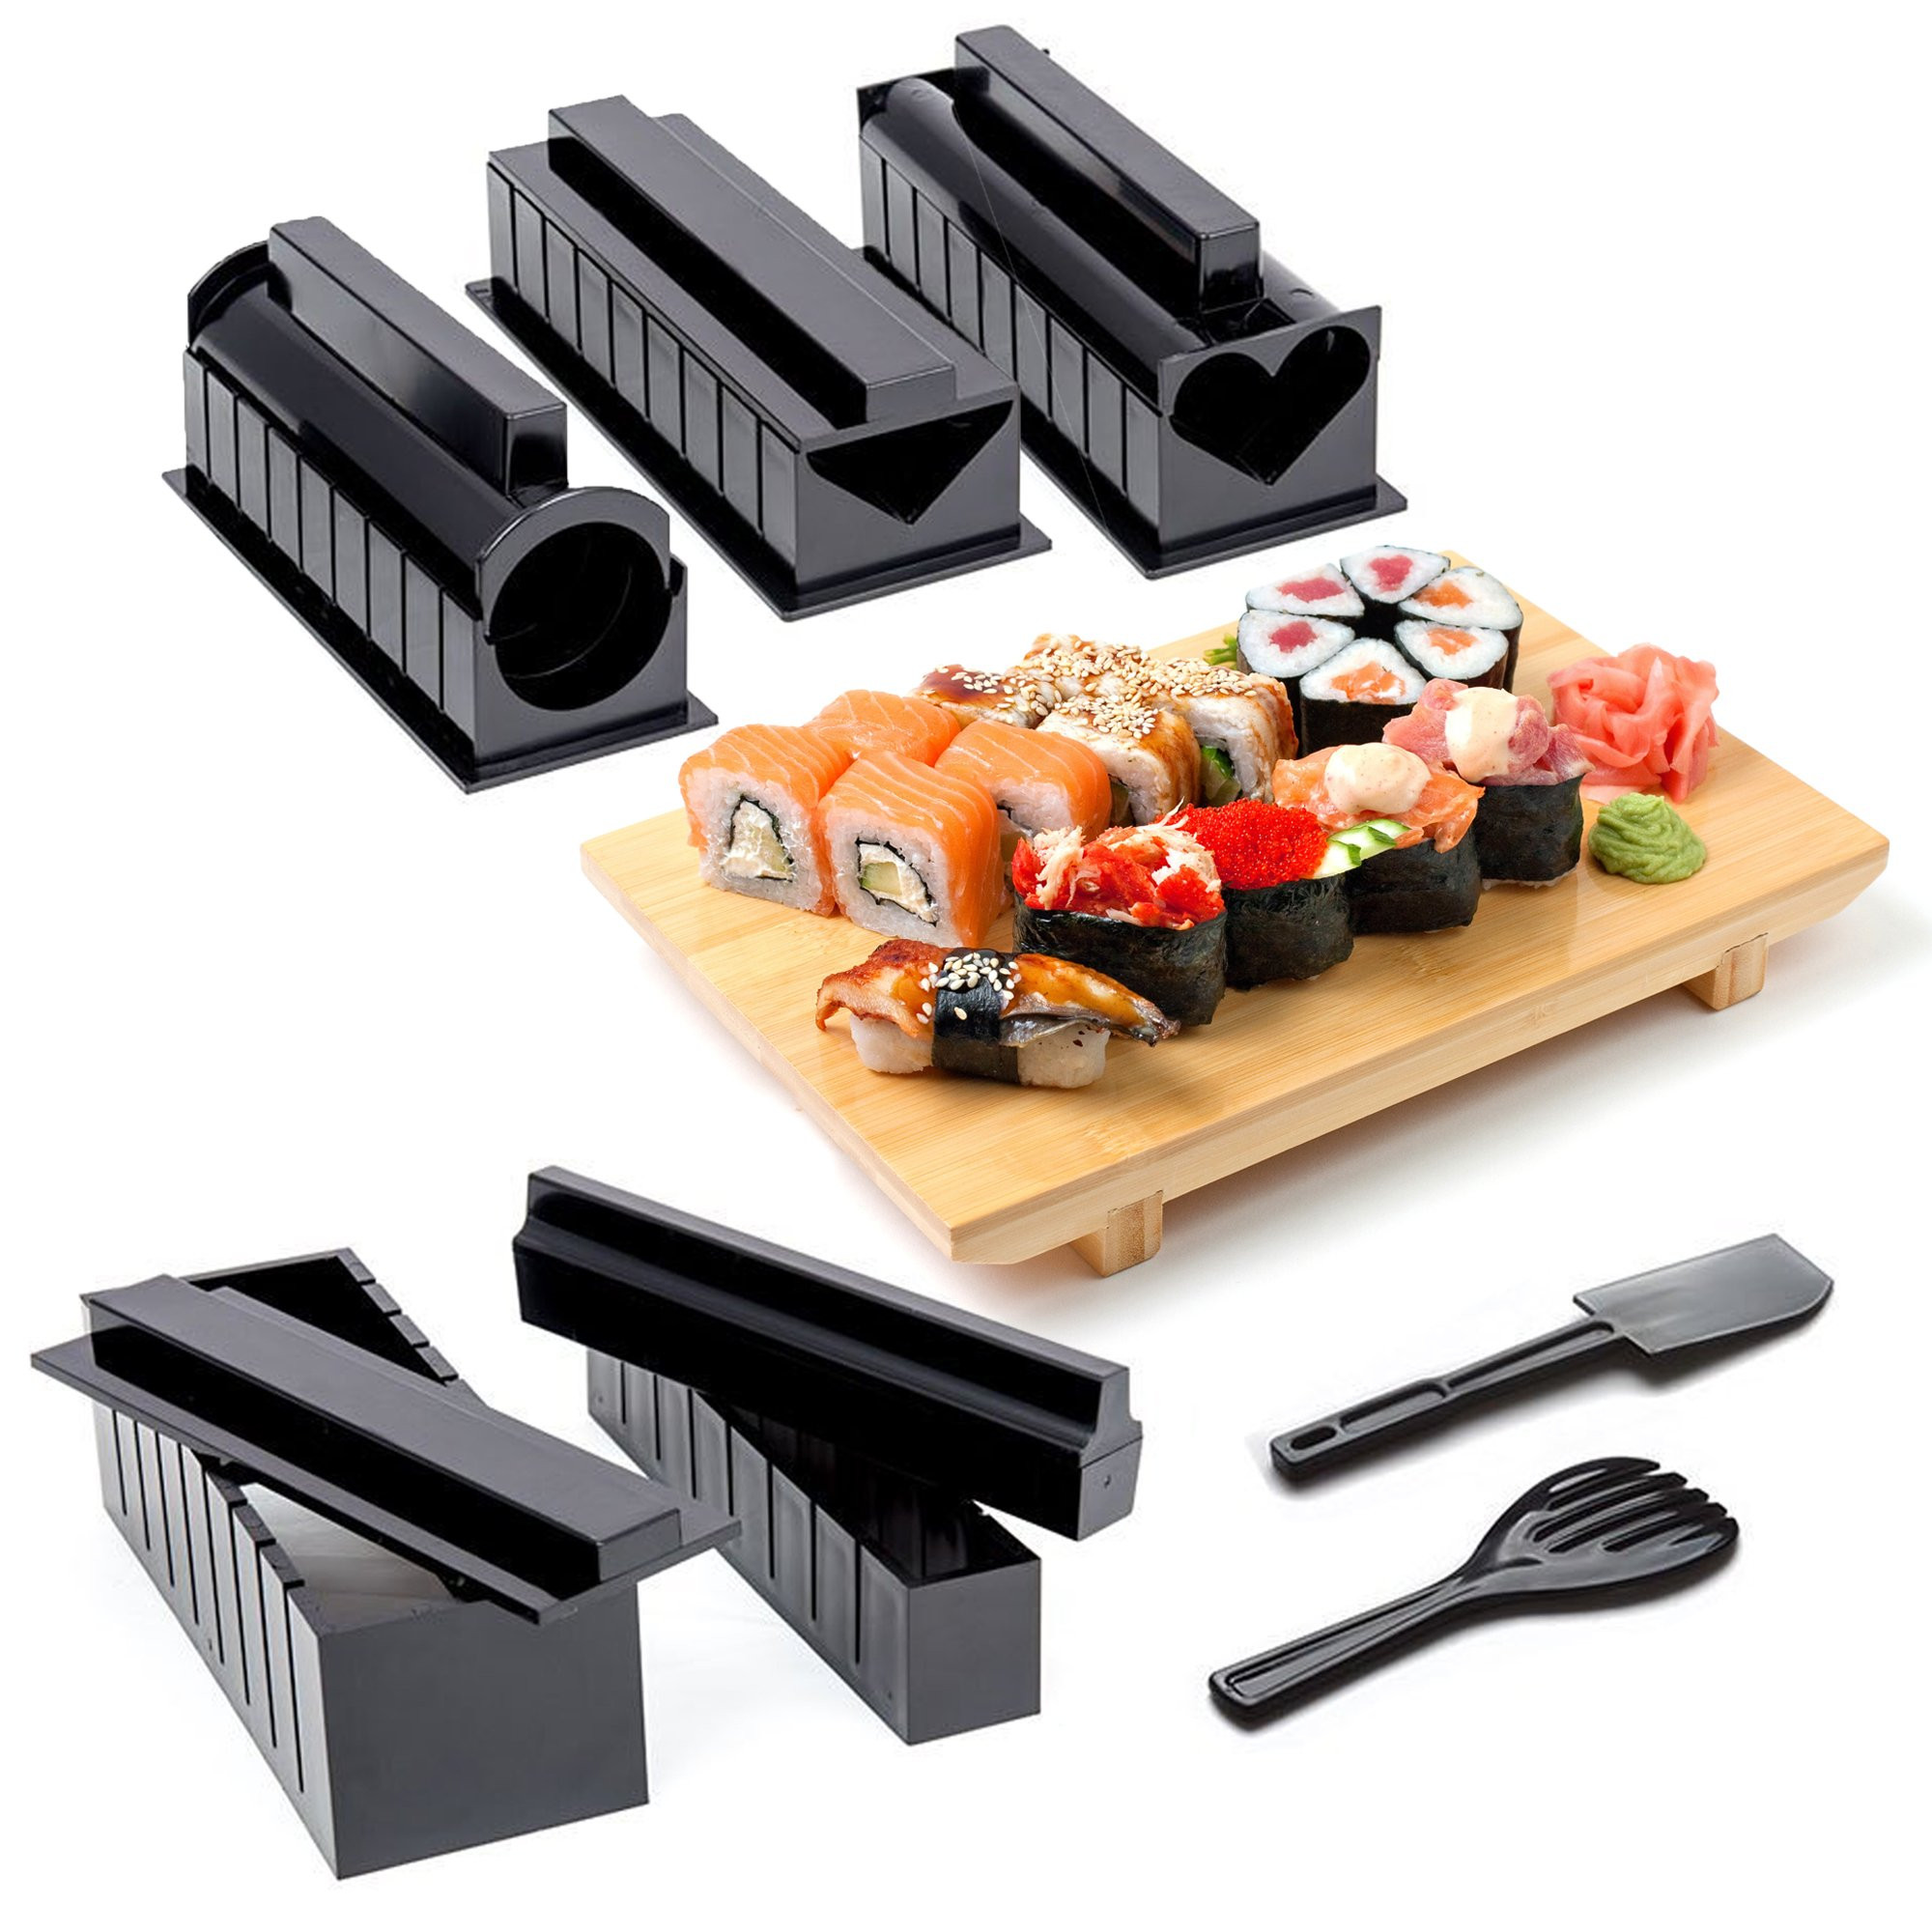 Best ideas about DIY Sushi Kit . Save or Pin Home Sushi Making Kit plete 10 piece Kit with 5 Molds Now.